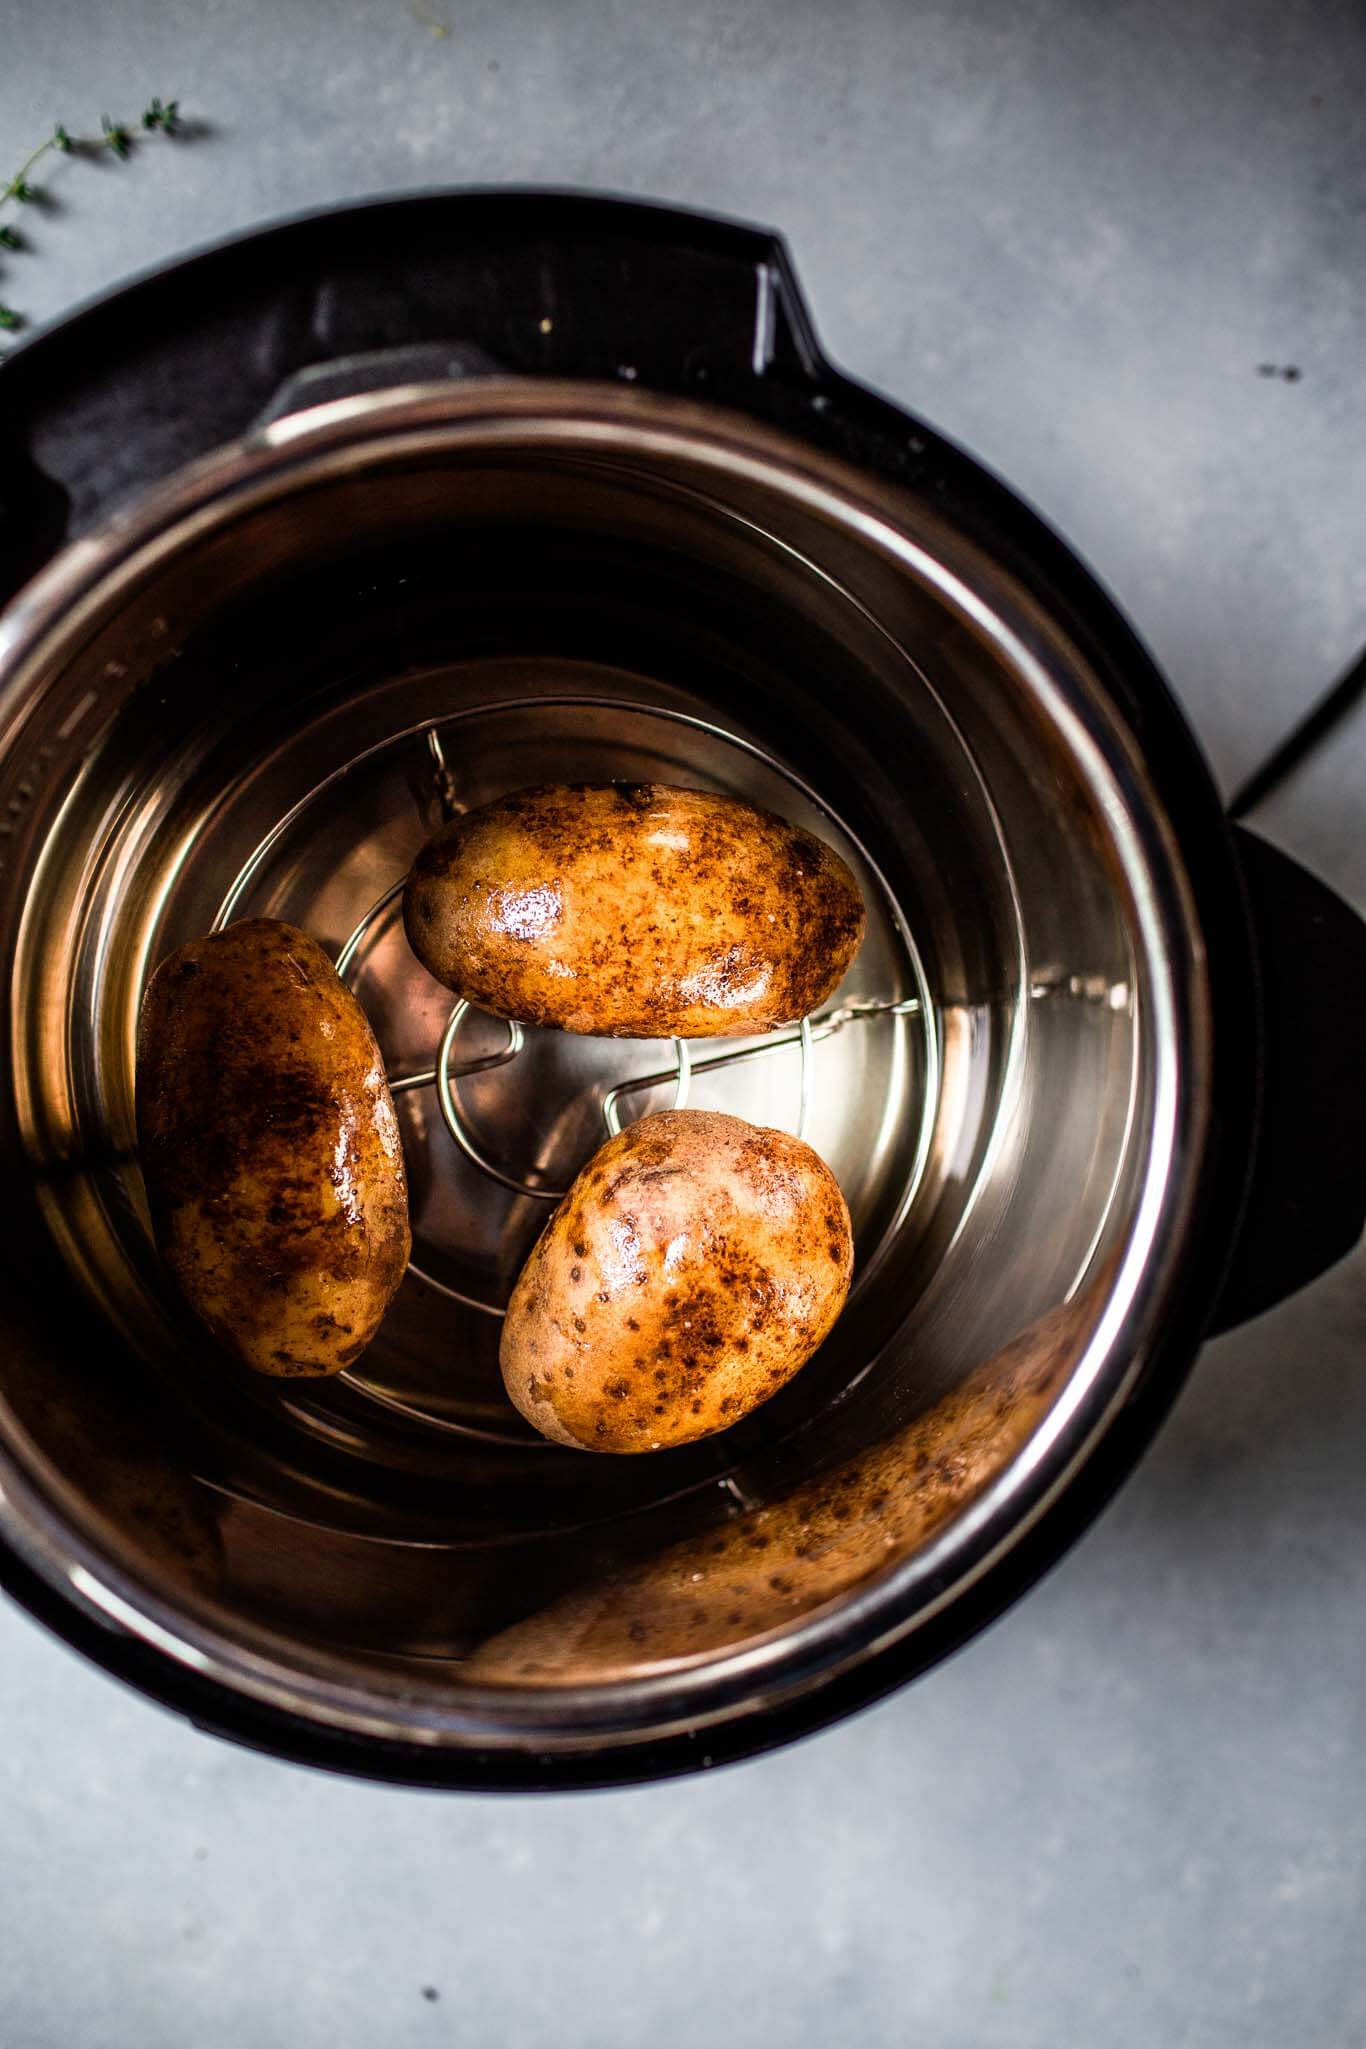 Potatoes in instant pot.